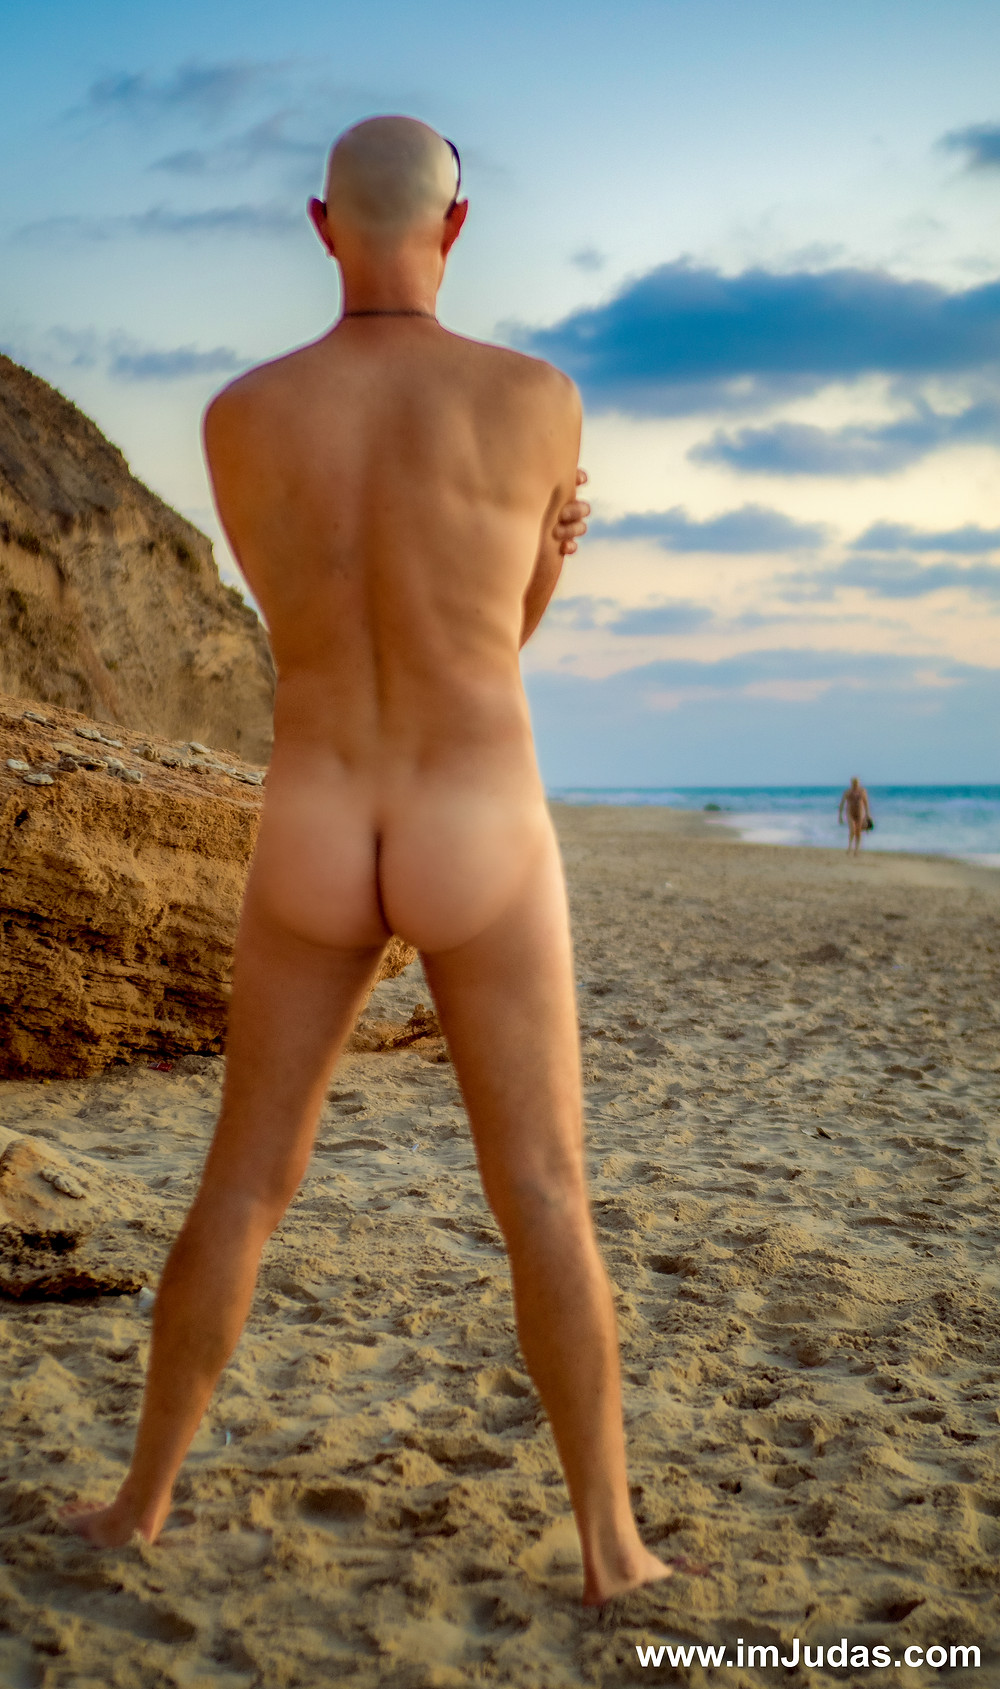 ass naked man male beach muscles